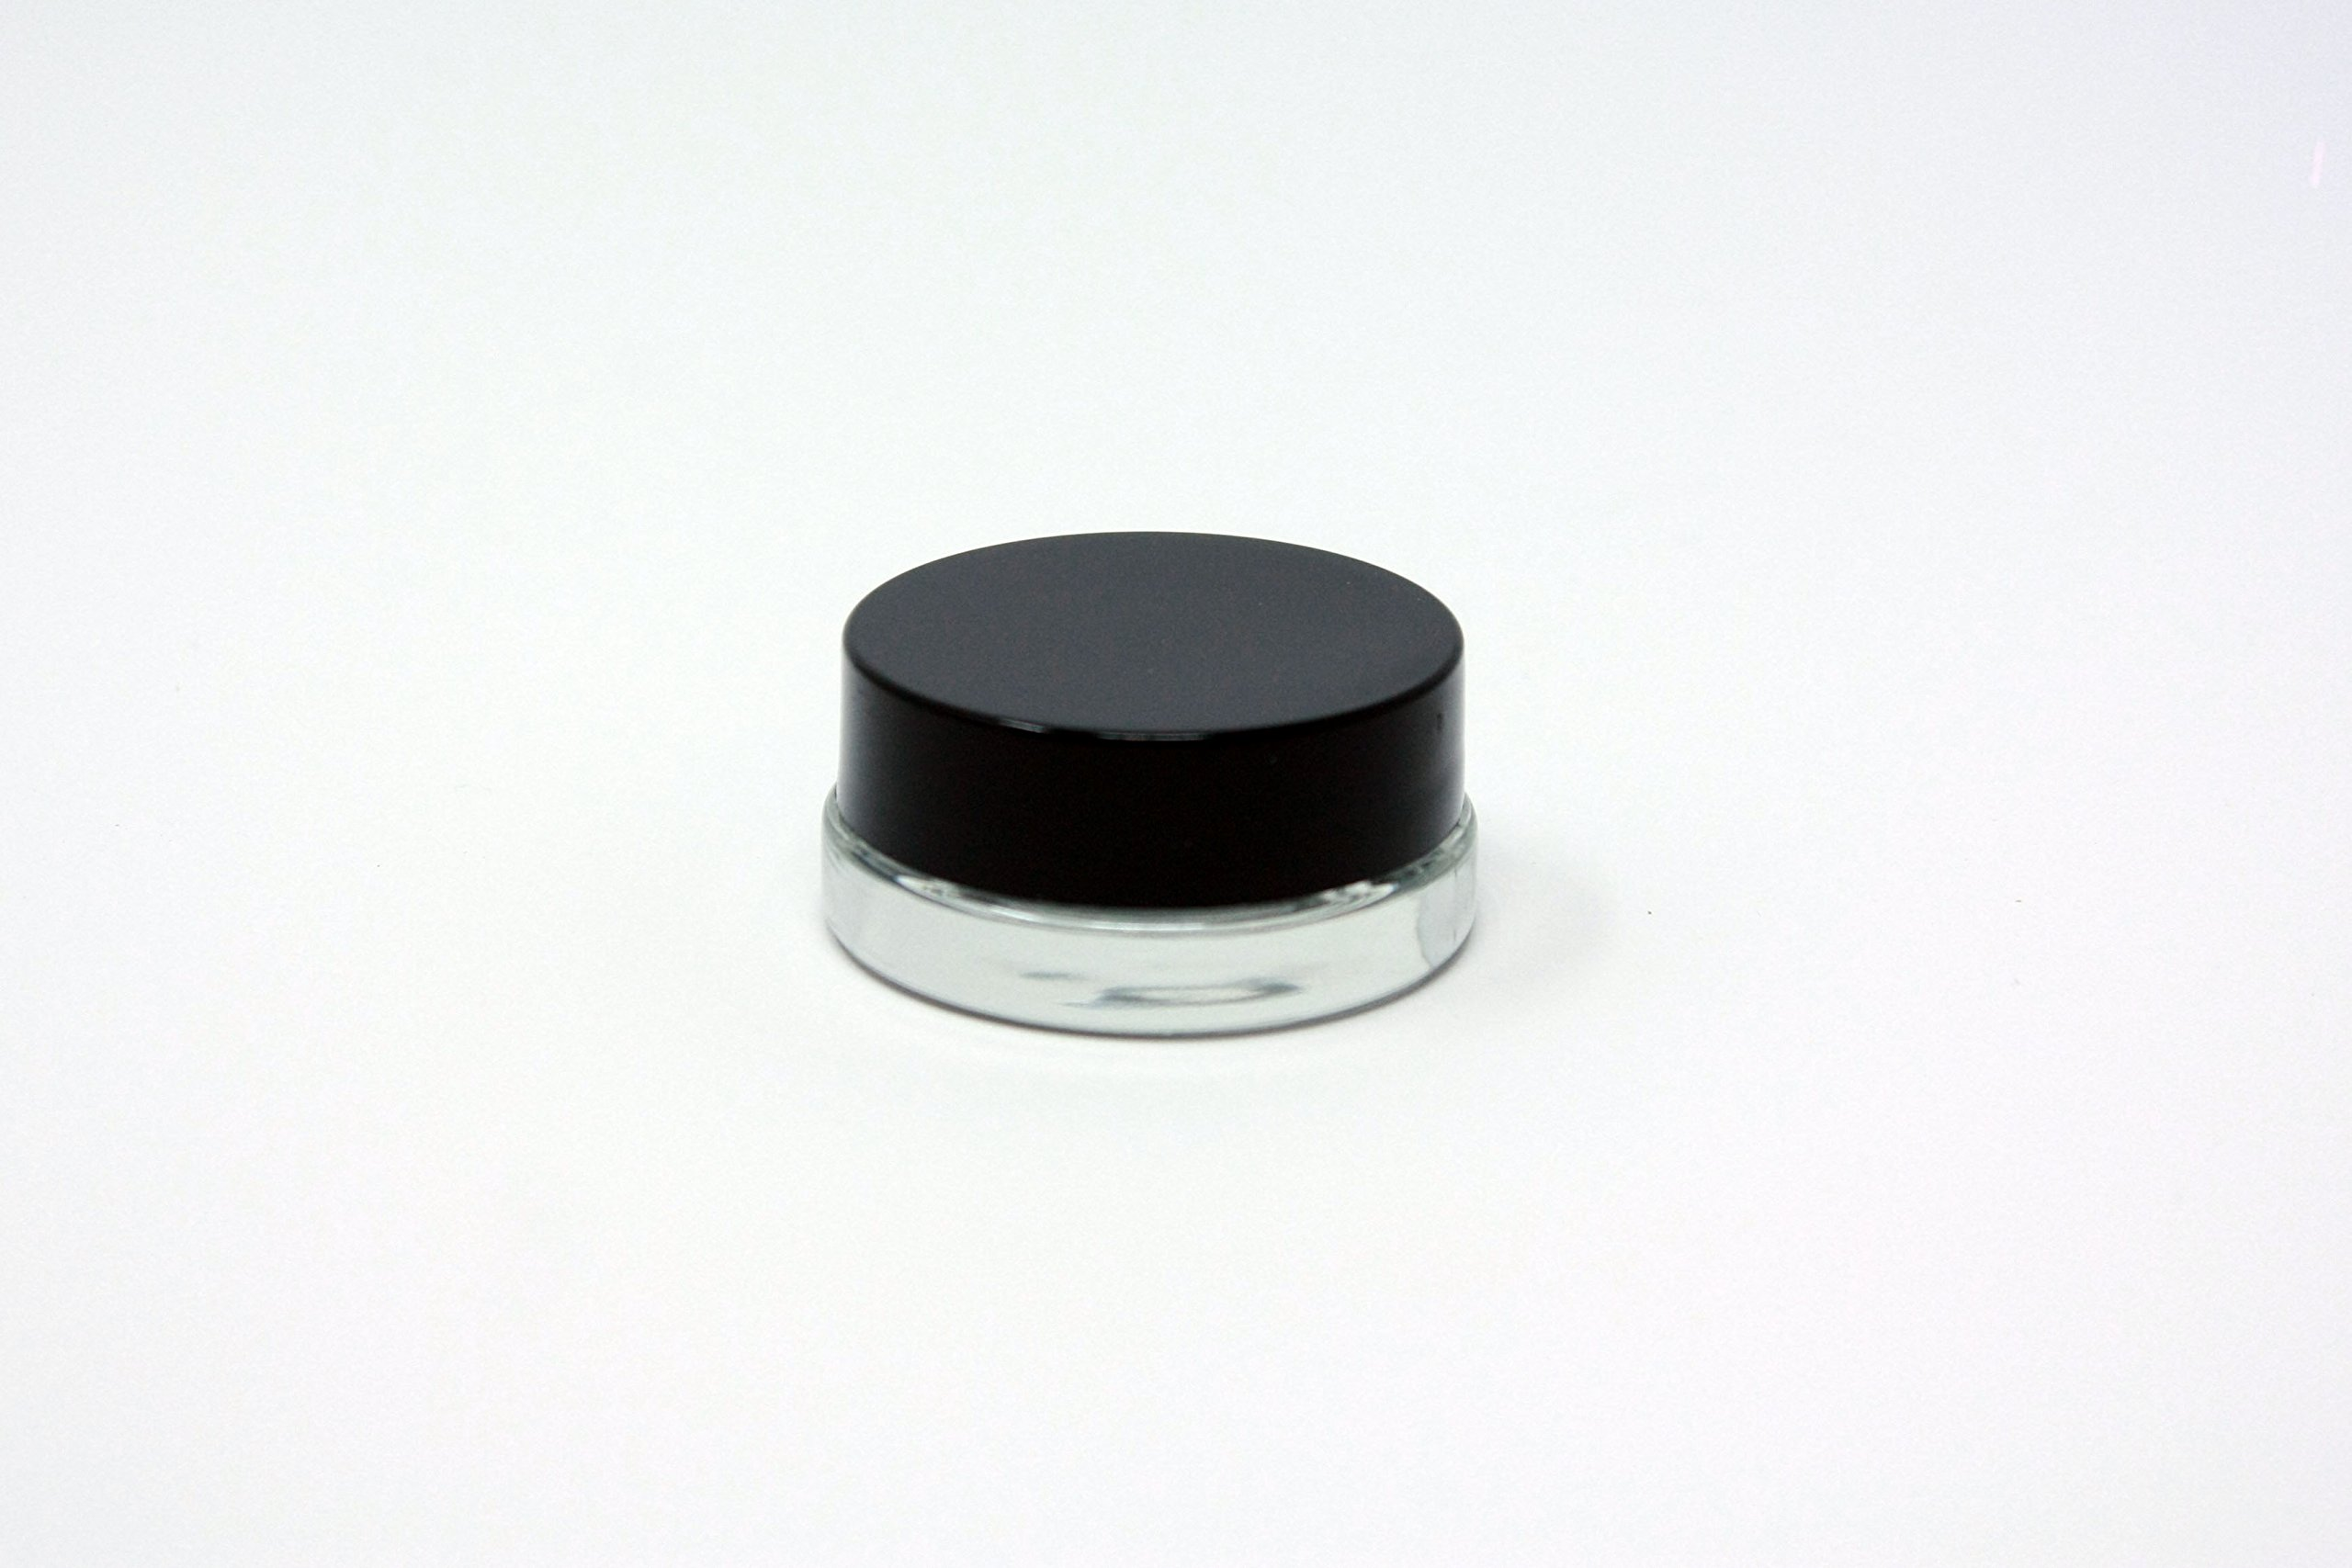 180pcs Thick Bottom Low Profile 7ml Glass Concentrate Jars with Black Lids : Air tight container for medical oils, rosins, waxes, and saucy diamonds by Slick (Image #2)